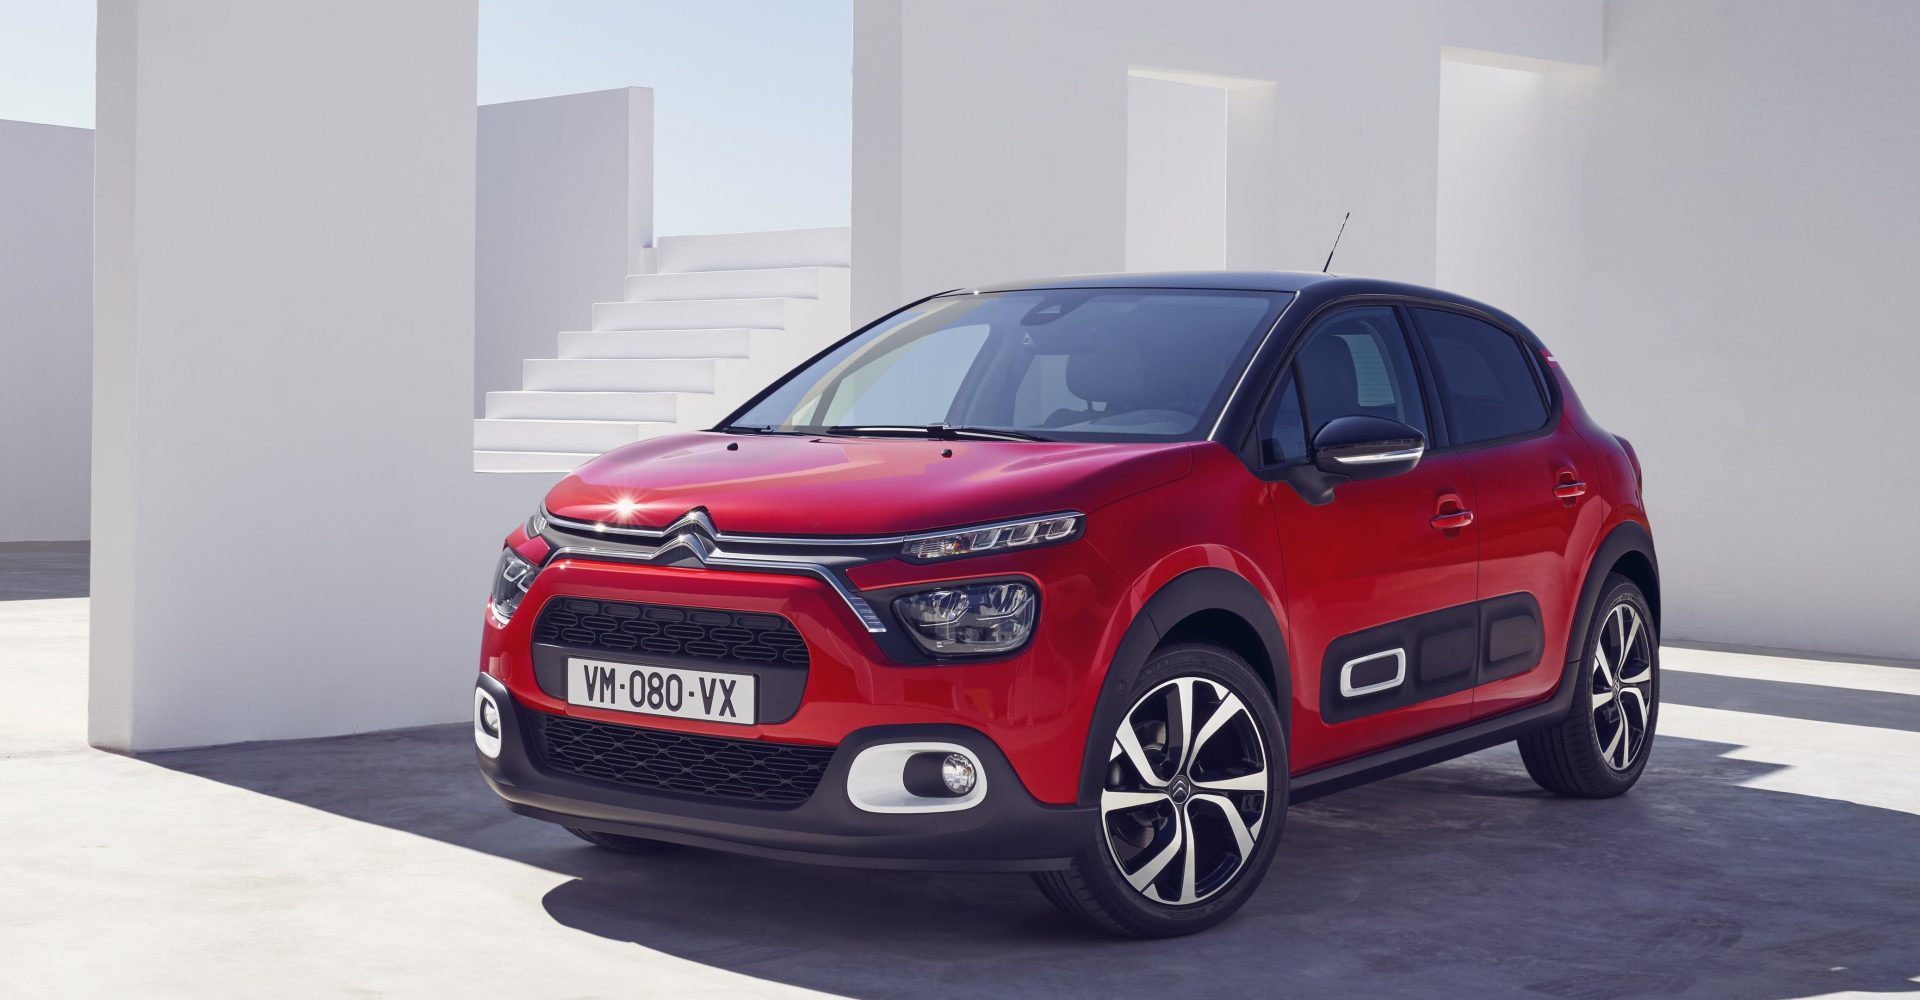 Citroen releases UK pricing for updated C3